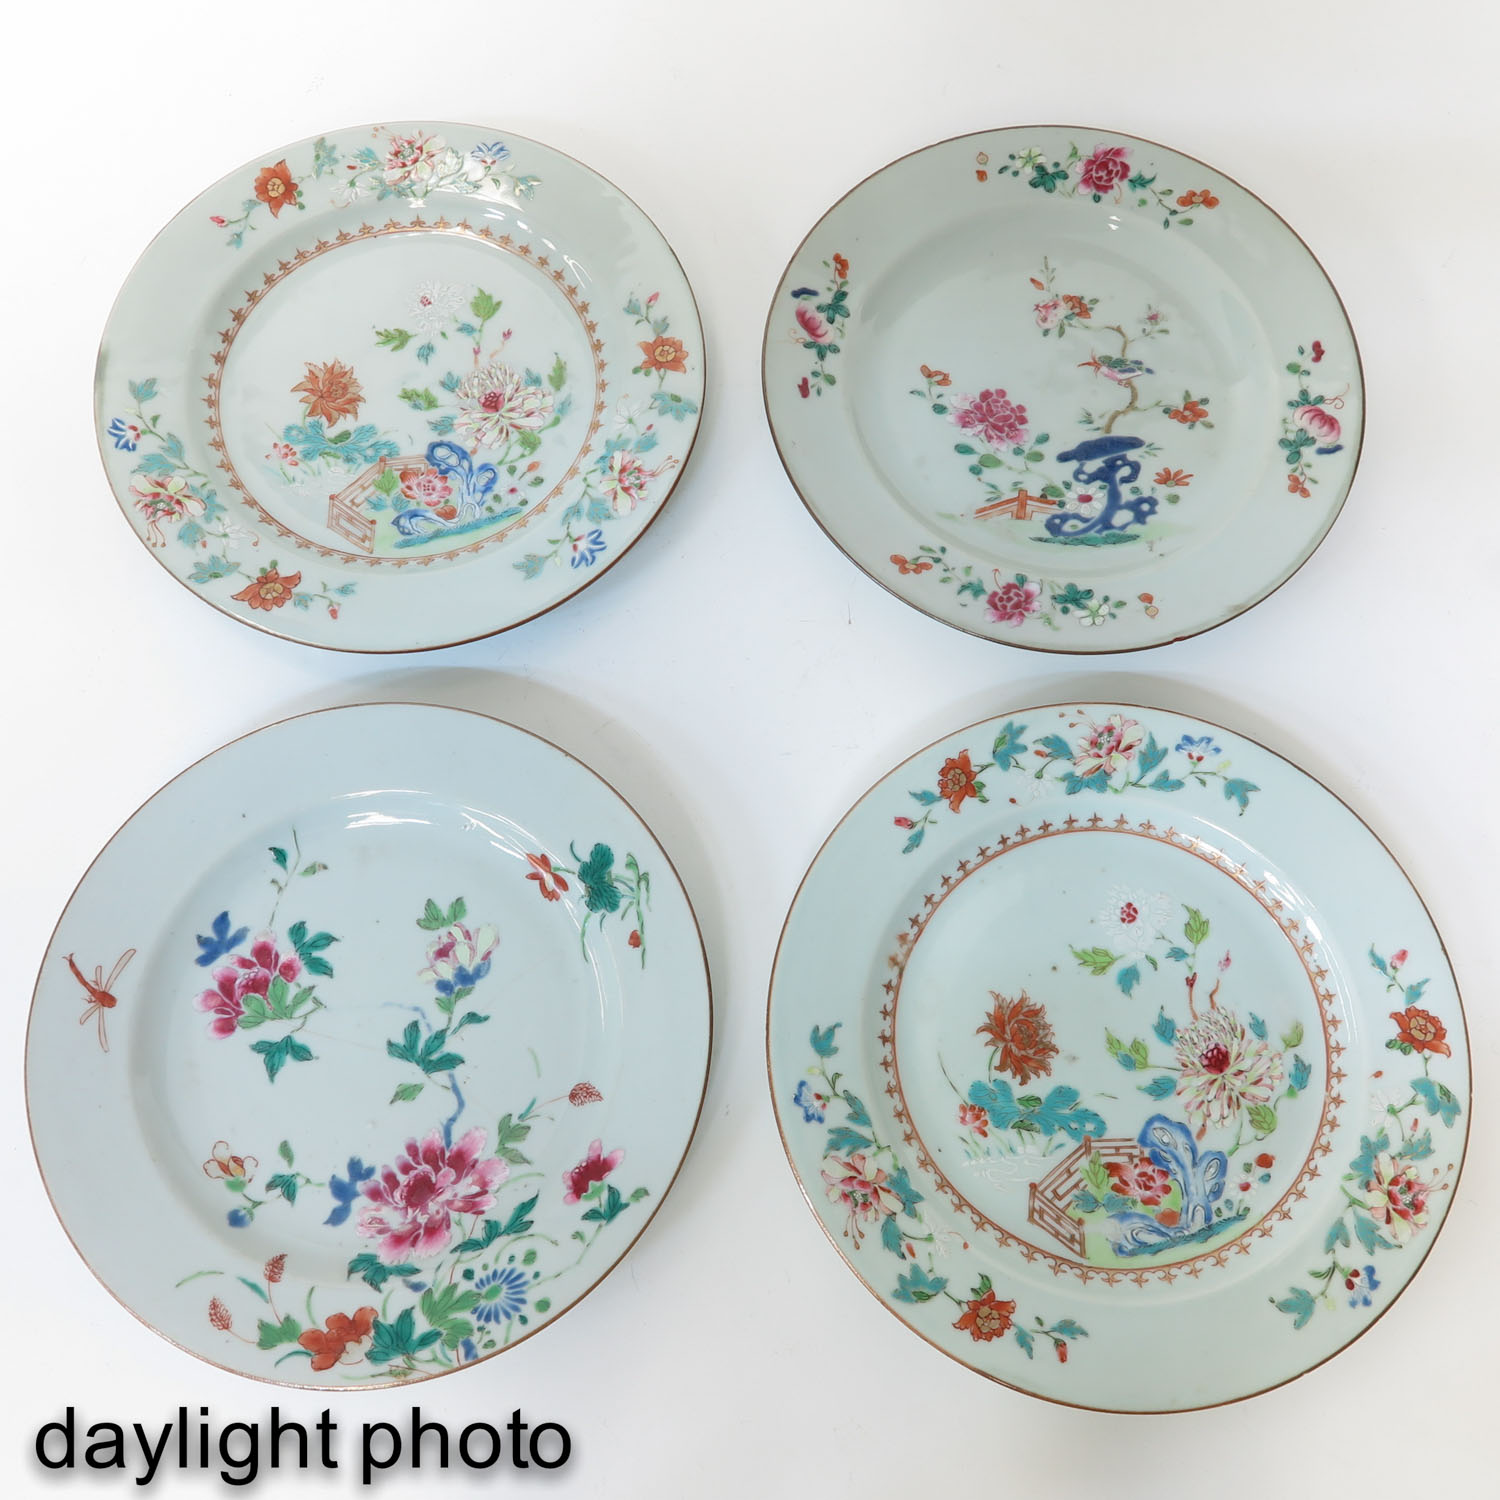 A Collection of 4 Famille Rose Plates - Image 7 of 10